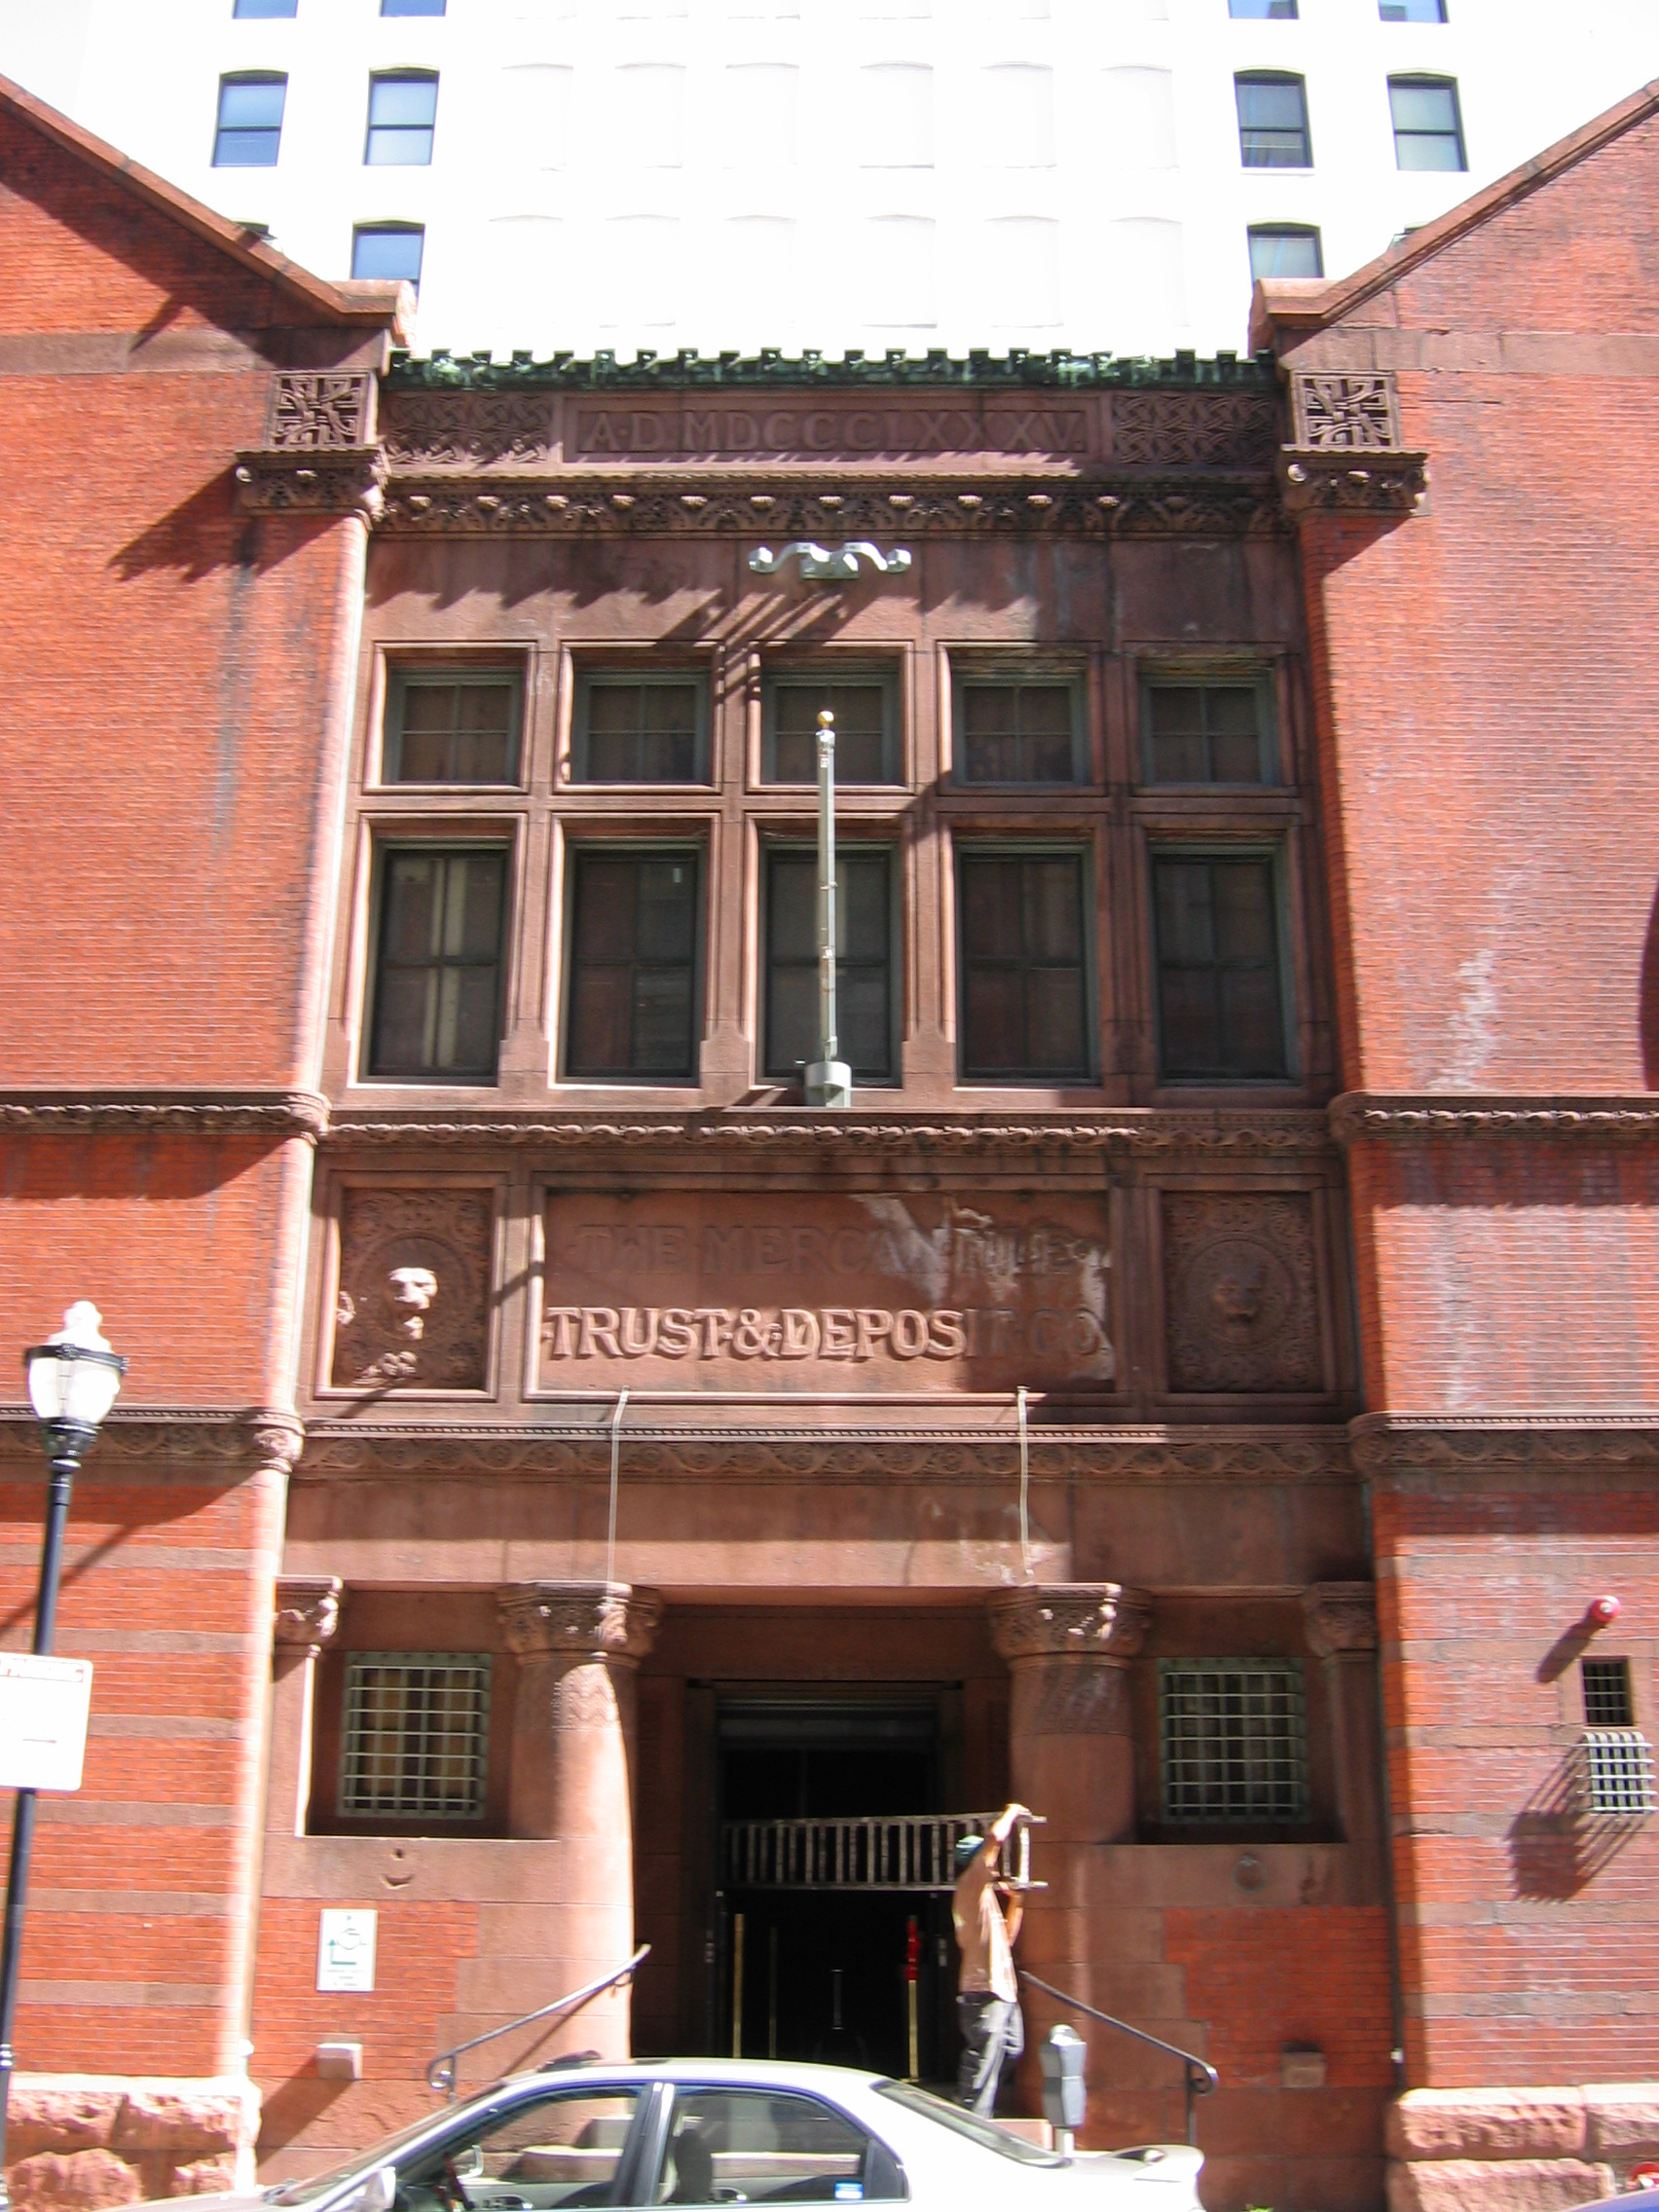 Engineer S Guide To Baltimore Mercantile Safe Deposit And